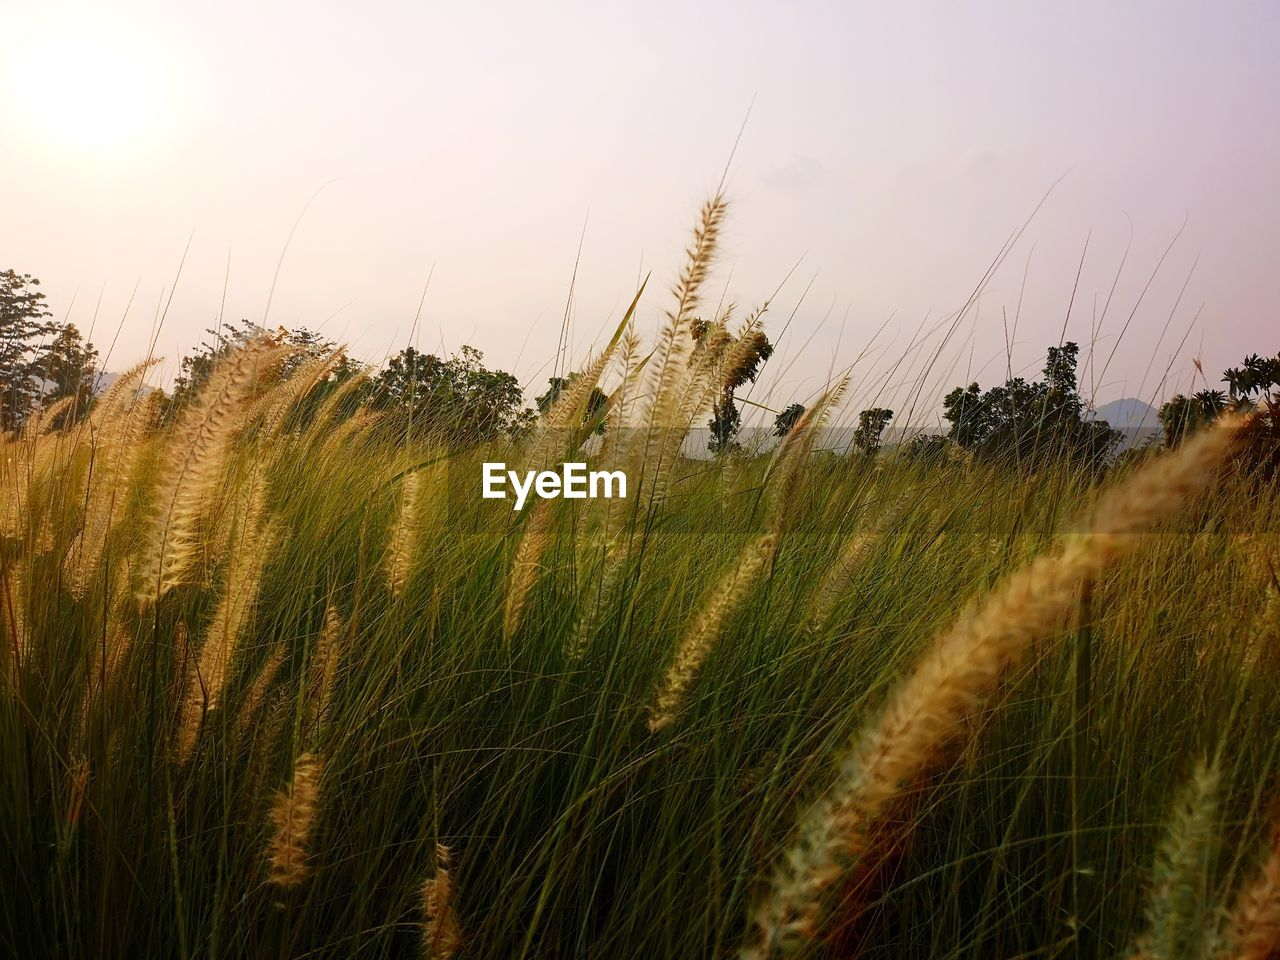 plant, growth, sky, land, nature, field, beauty in nature, grass, landscape, tranquility, environment, no people, cereal plant, crop, agriculture, tranquil scene, day, scenics - nature, wheat, rural scene, outdoors, timothy grass, stalk